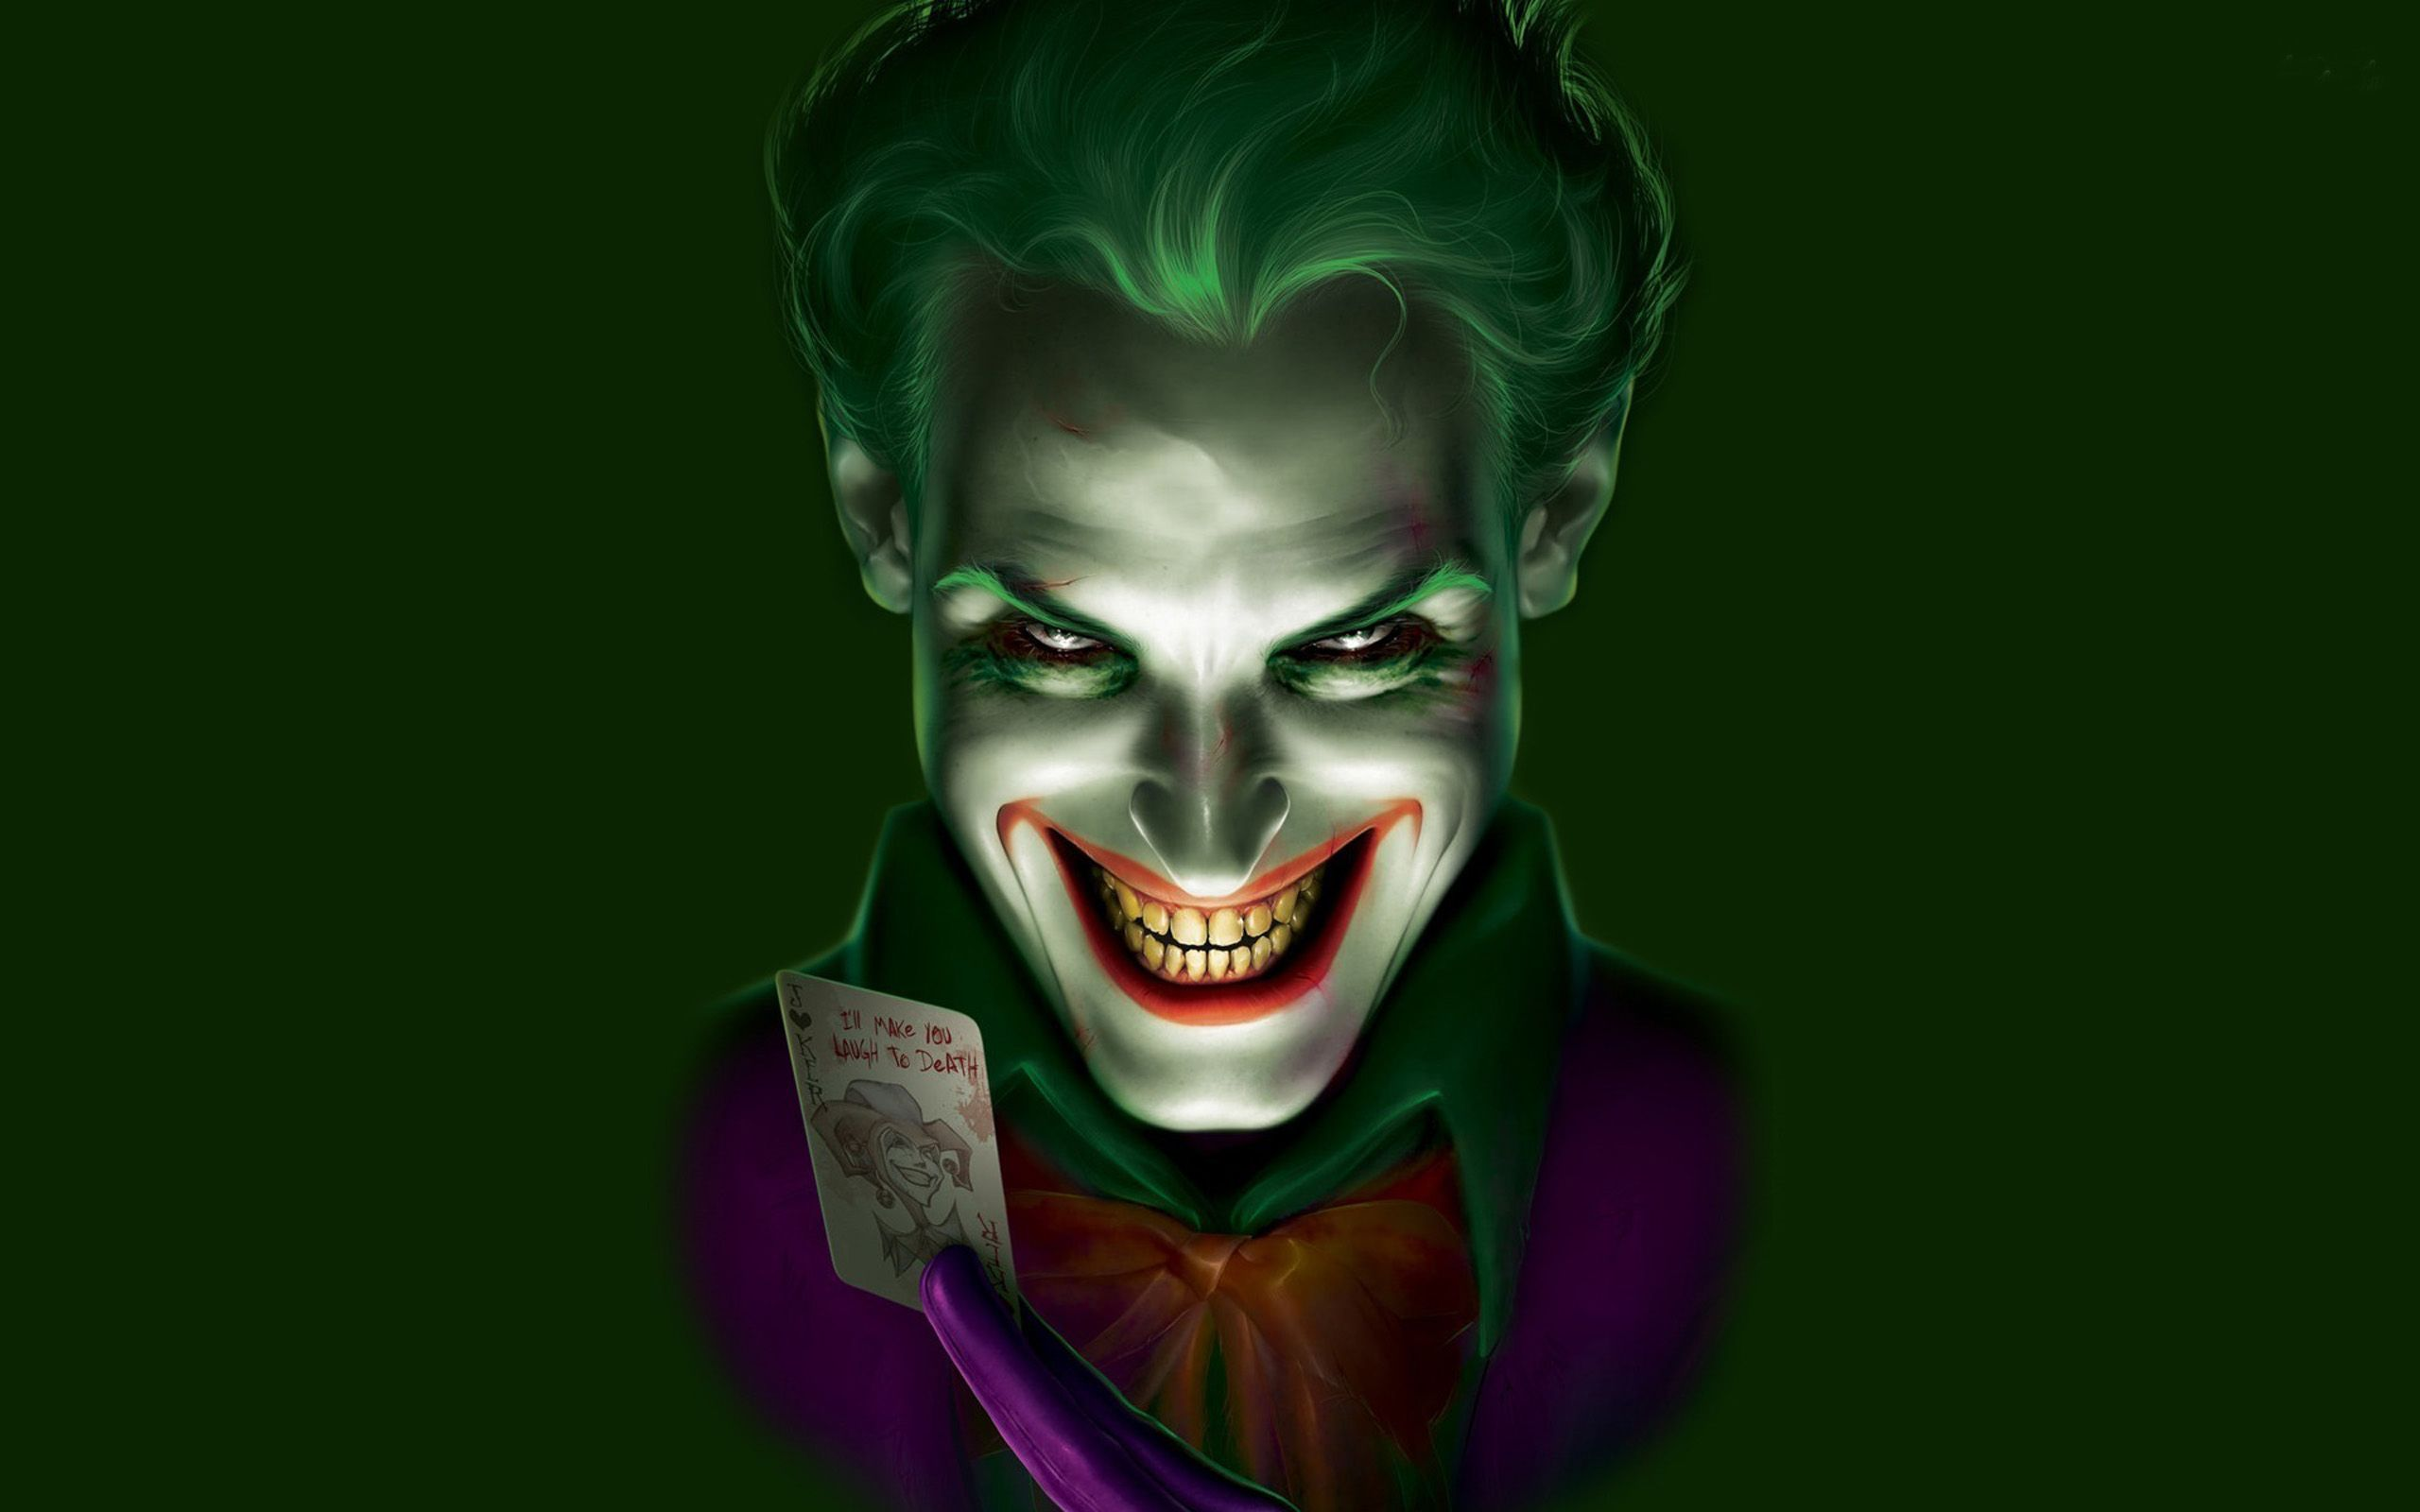 Joker Wallpapers Top Free Joker Backgrounds Wallpaperaccess